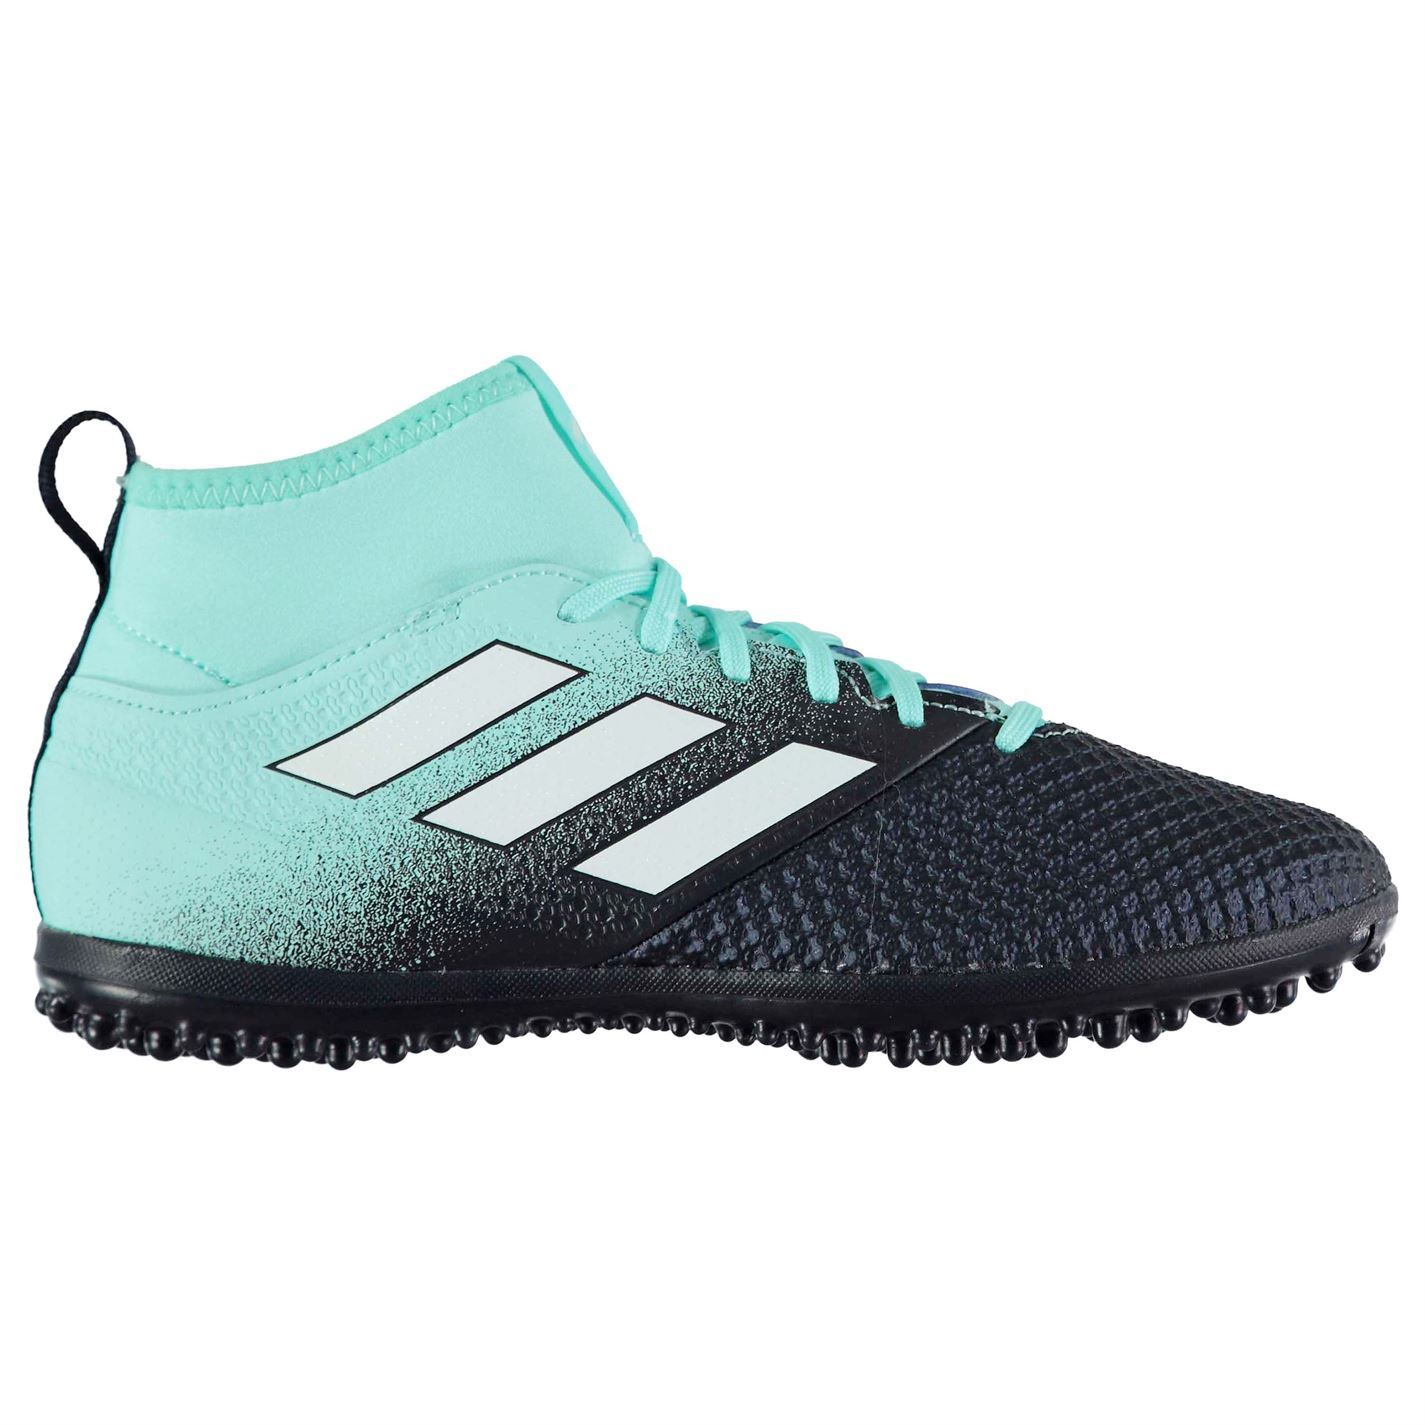 131a1f681873 adidas Mens Ace 17.3 Primemesh Astro Turf Trainers Football Boots ...